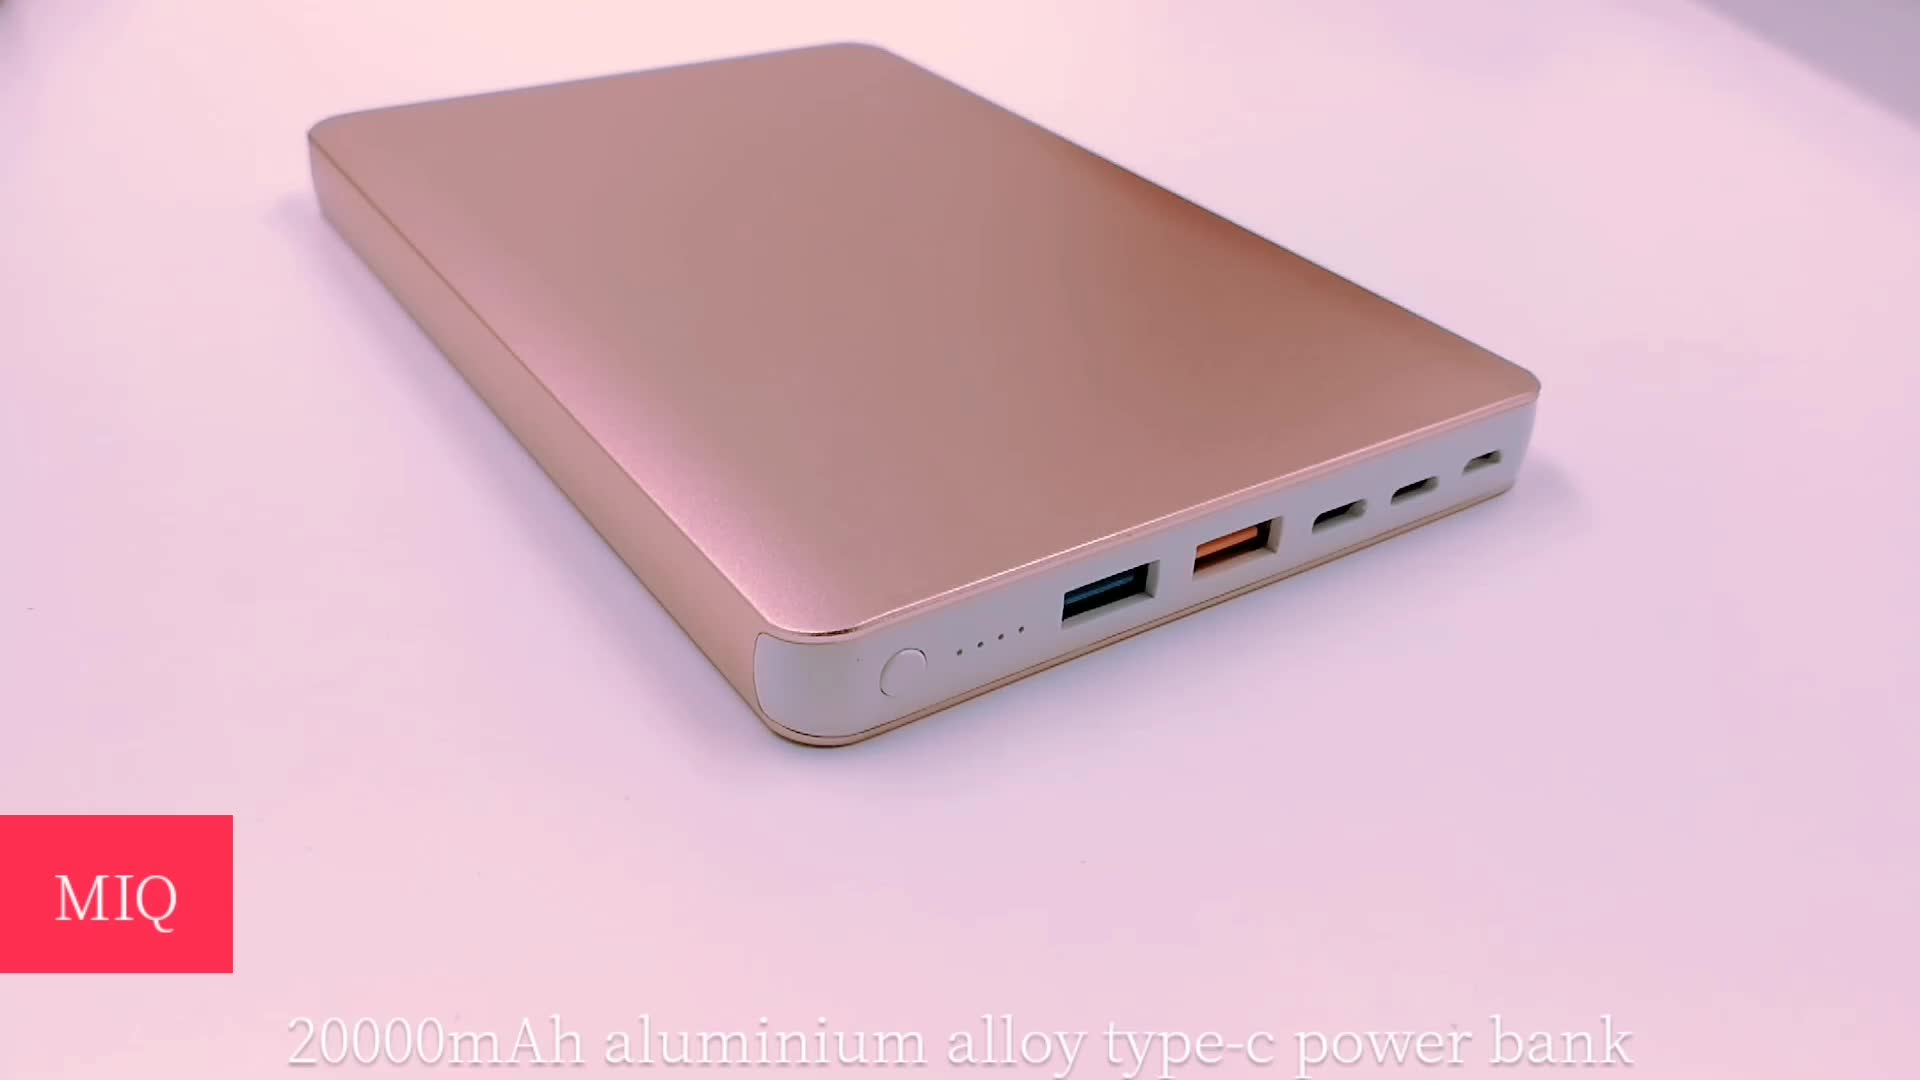 Three output ports power bank ,long lasting high capacity power bank 20000mAh